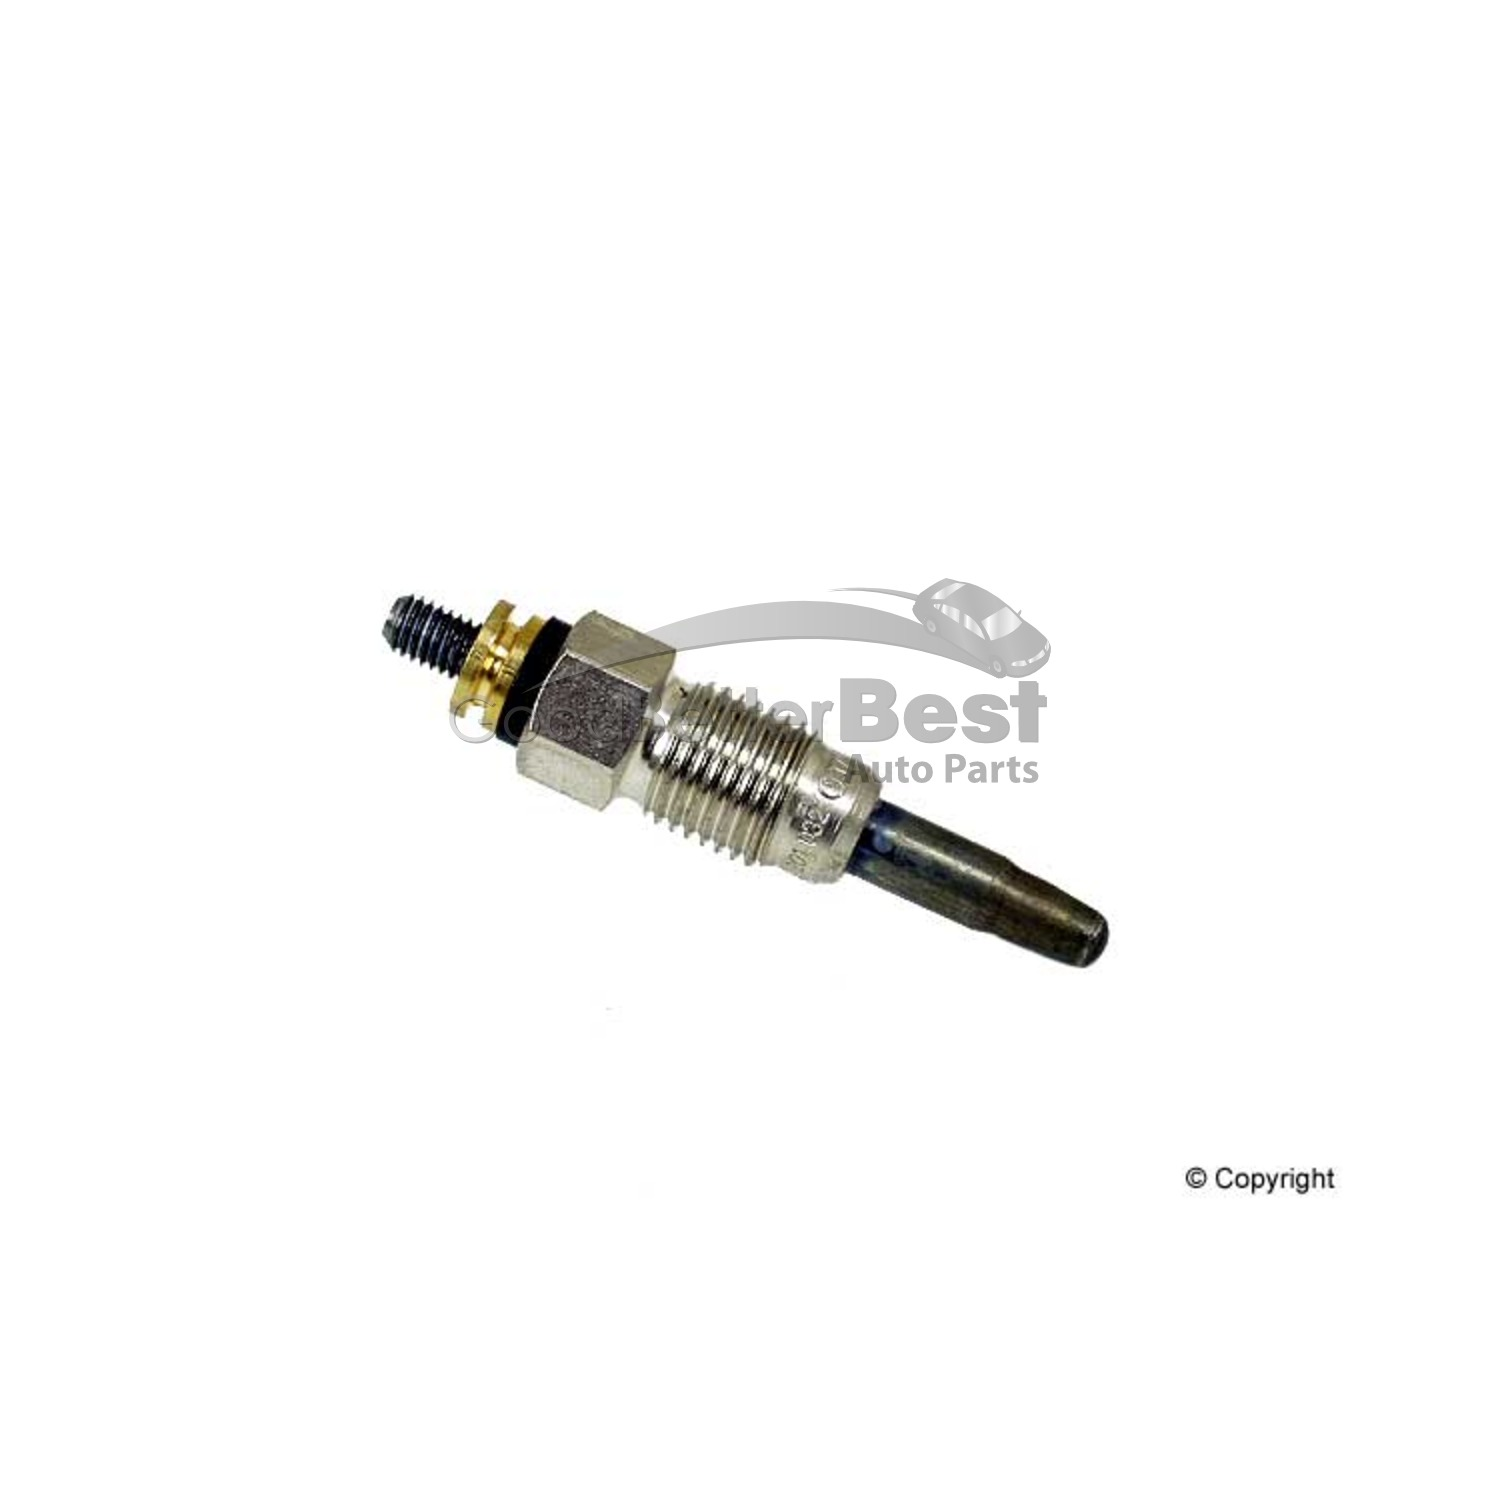 New Boschsel Glow Plug N For Audi